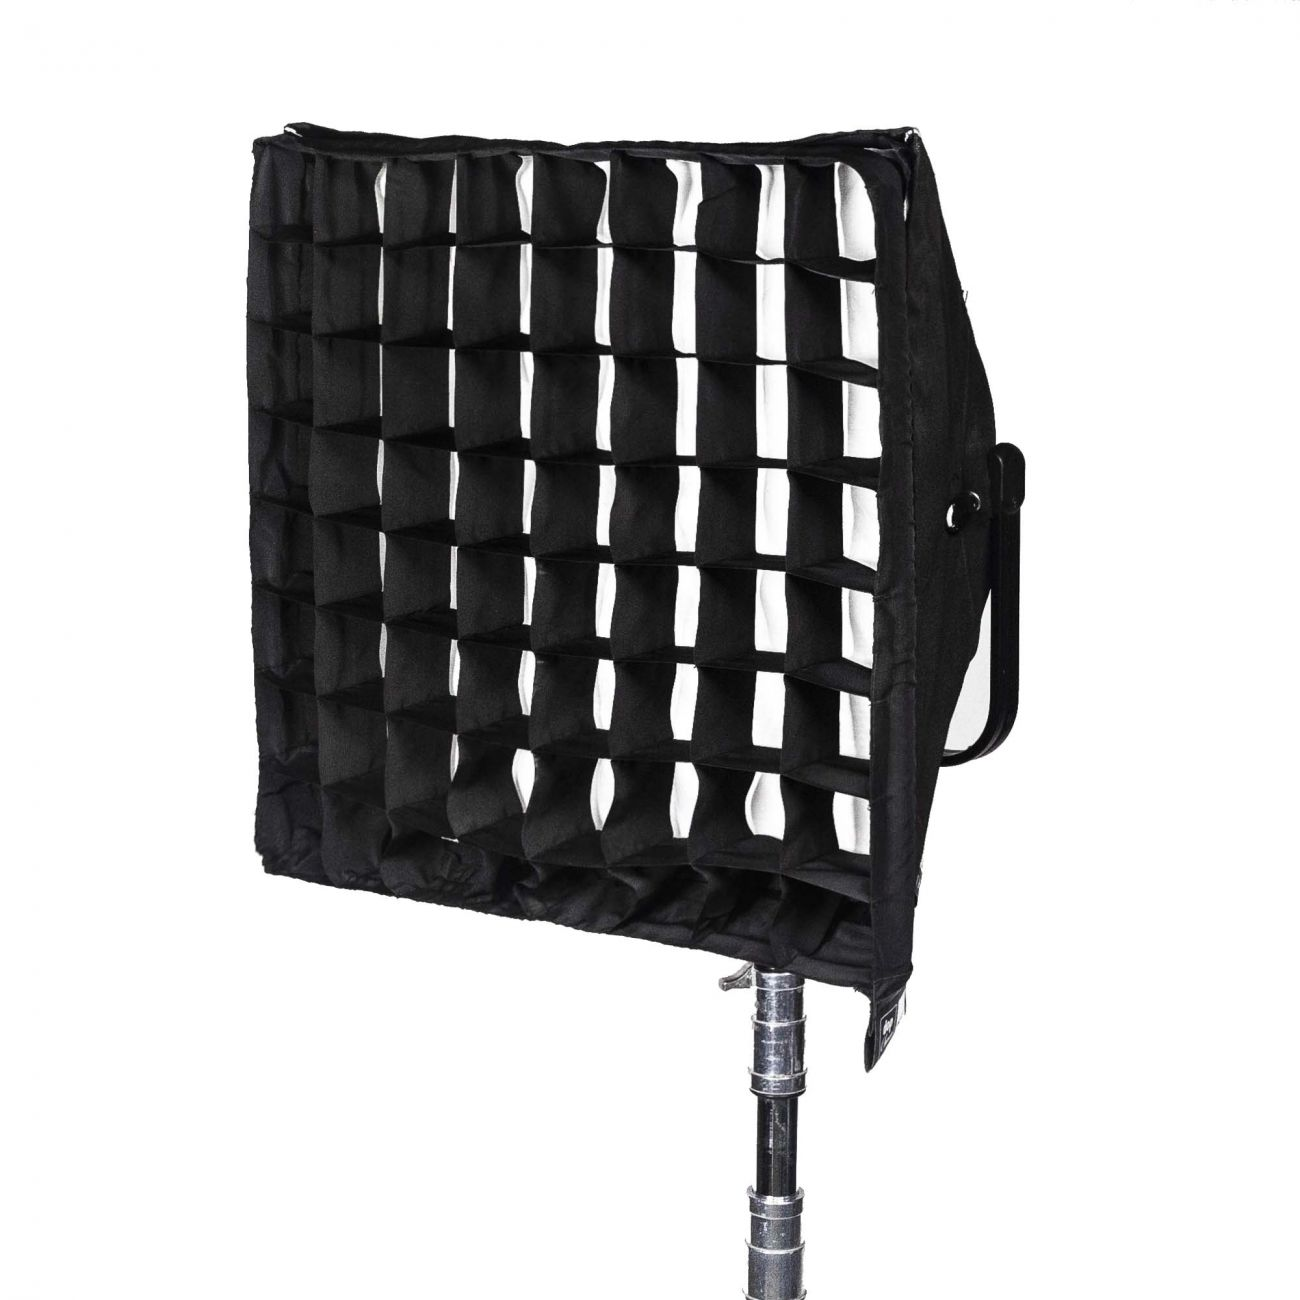 SnapGrid for Softbox SnapGrid S30